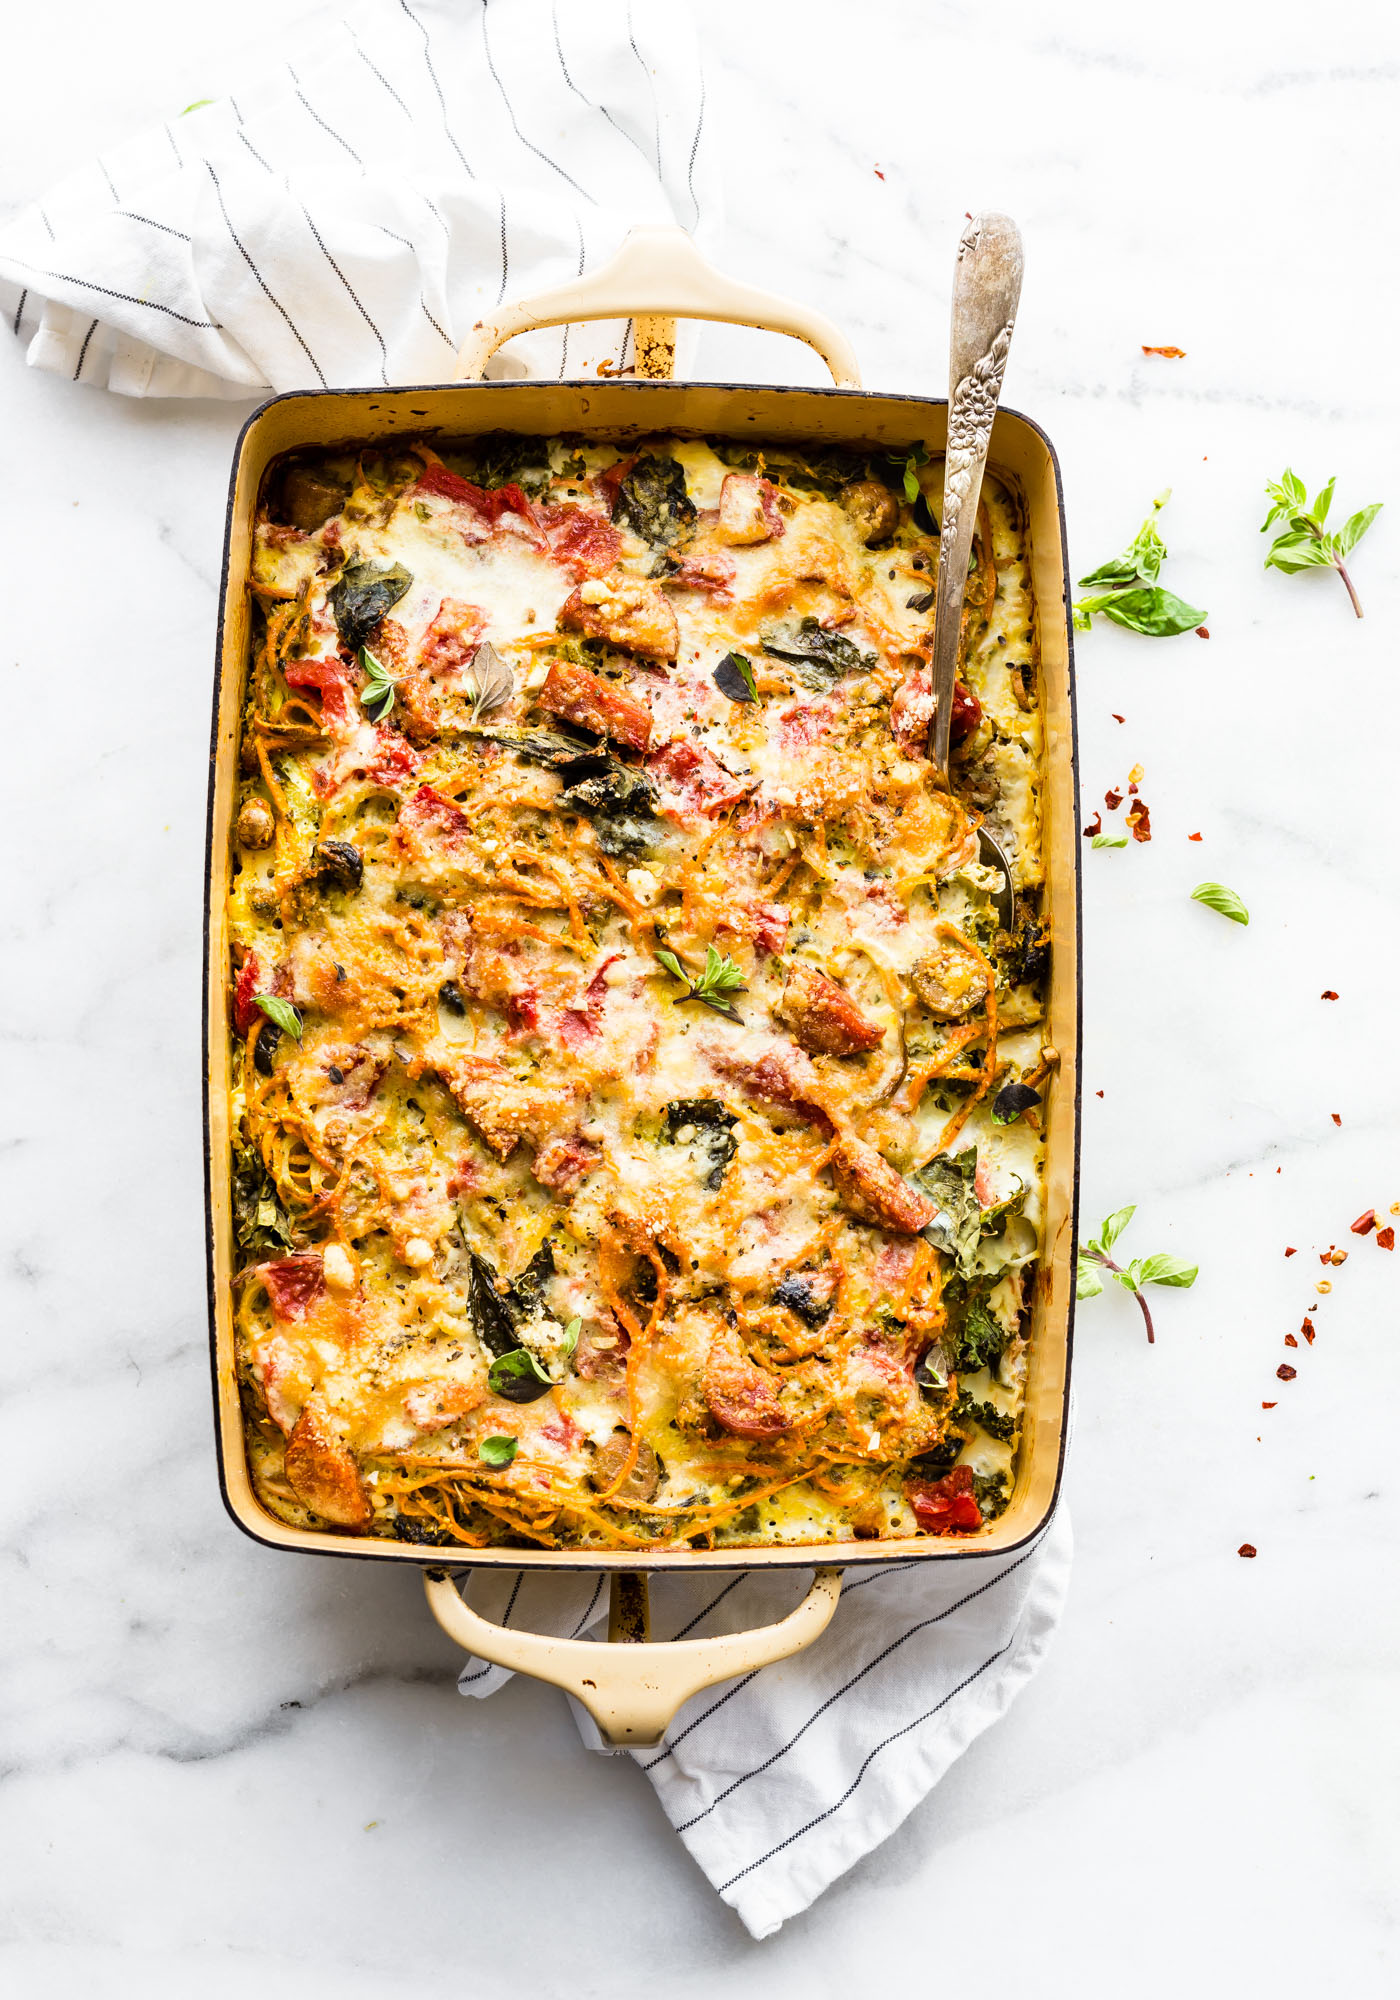 Spiralized sweet potato spaghetti casserole! An easy to make spaghetti casserole dish made with spiralized sweet potatoes! Grain Free, gluten free, Healthy!